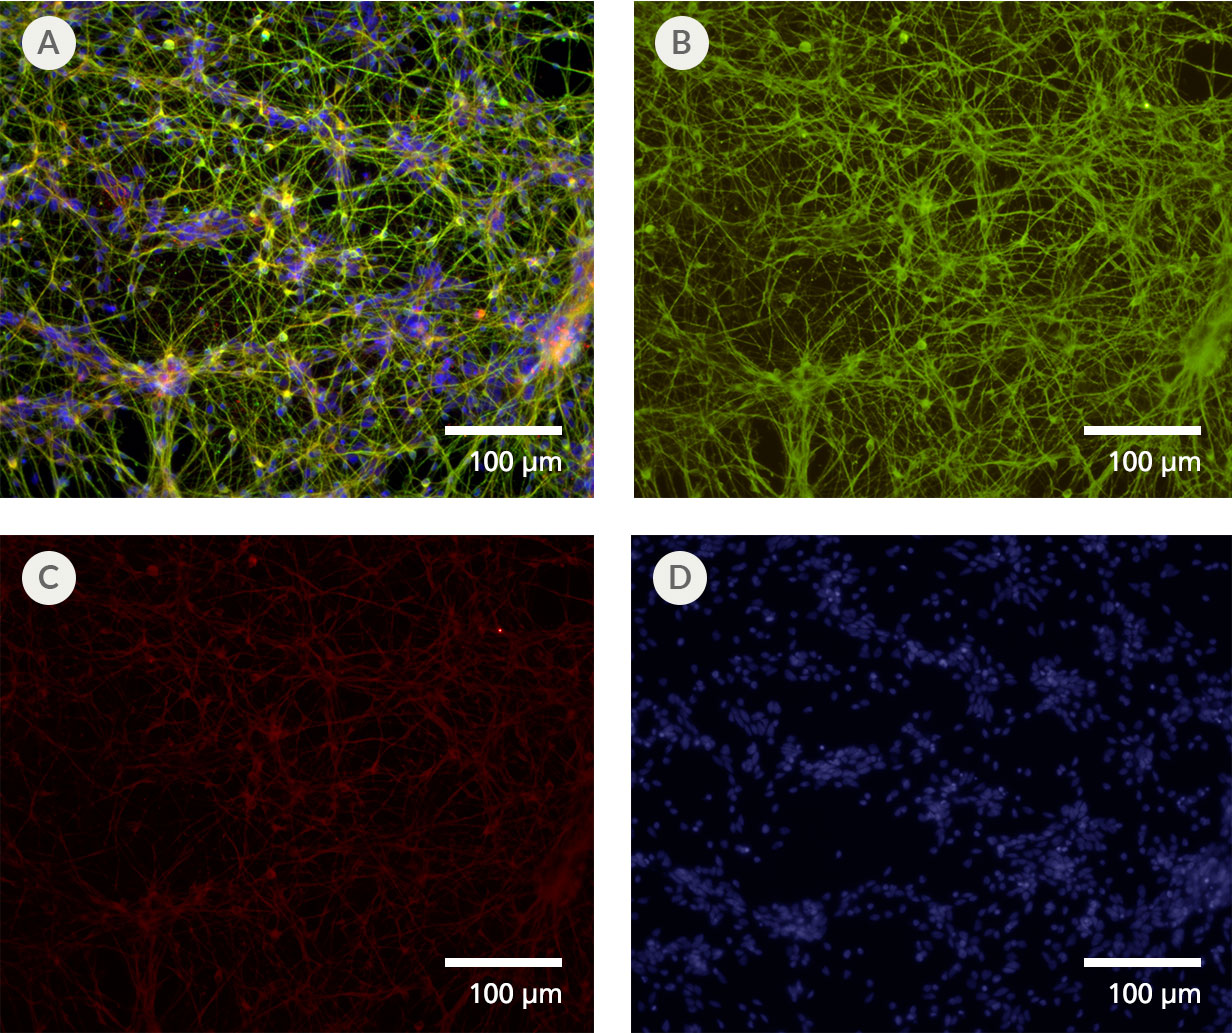 Forebrain-Type Neurons Are Generated from Neural Progenitor Cells After Culture in STEMdiff™ SMADi Neural Induction Kit and STEMdiff™ Forebrain Neuron Differentiation and Maturation Kits